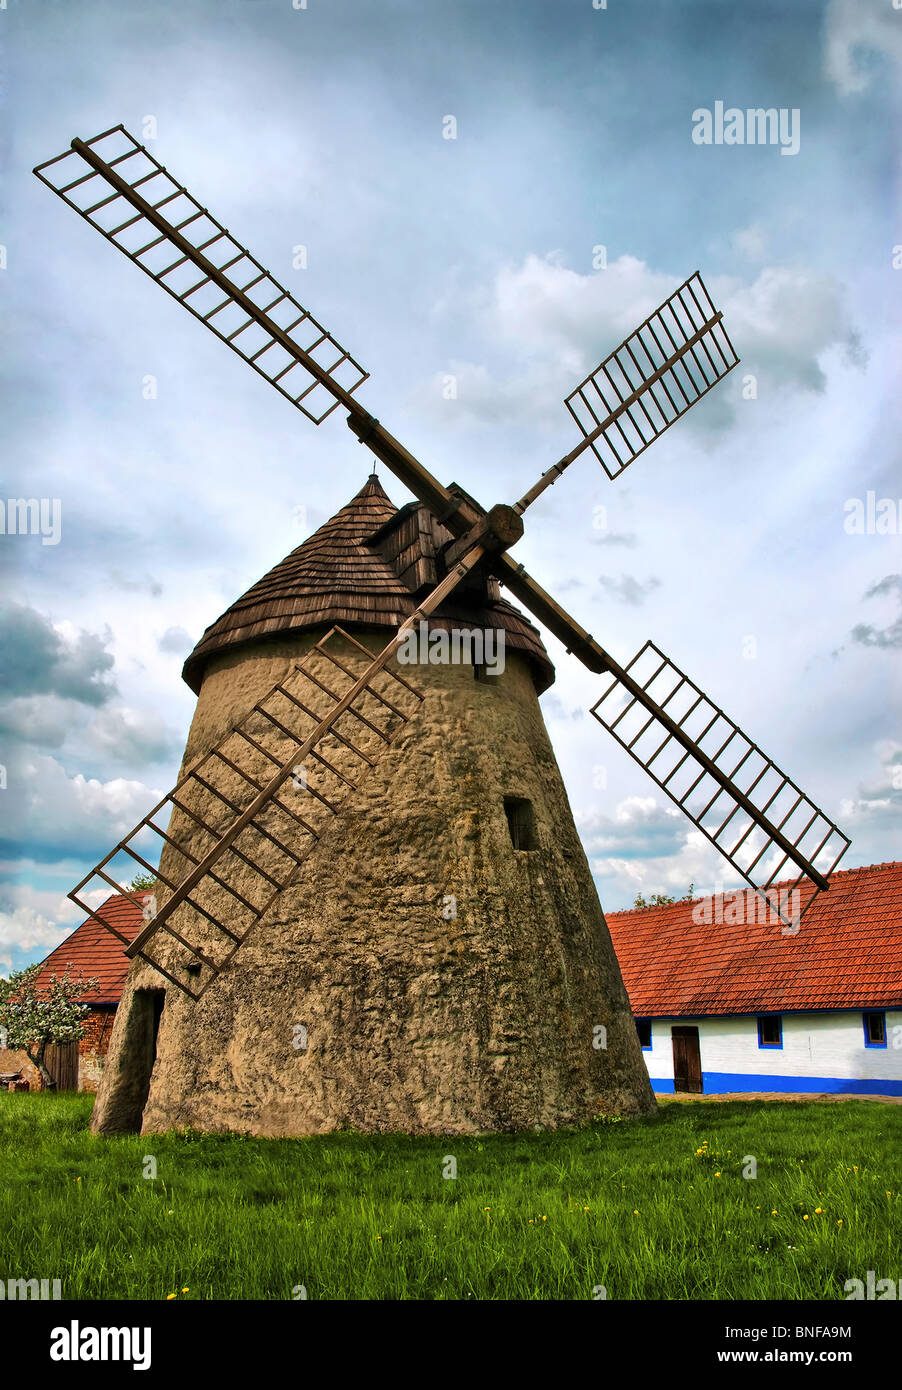 Old windmill - Stock Image